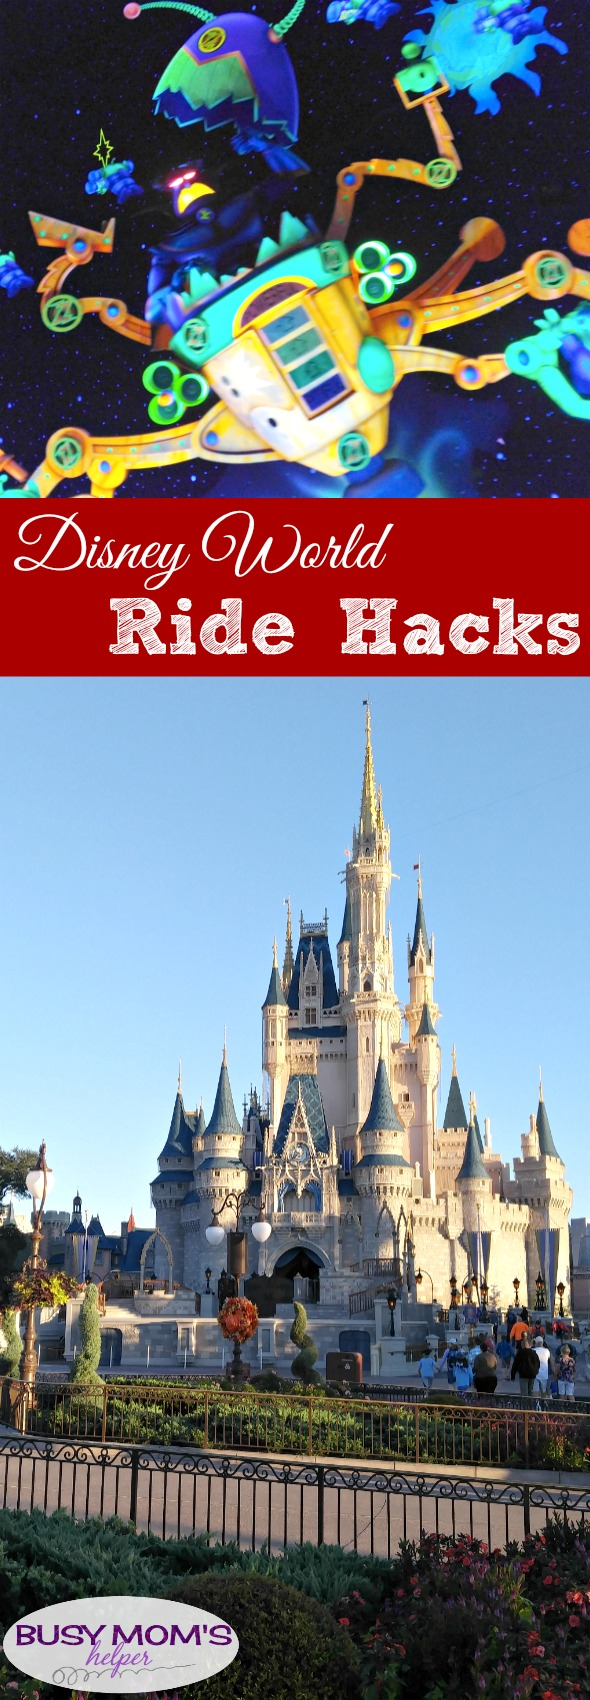 Best Disney World Ride Hacks #waltdisneyworld #familytravel #travel #disney